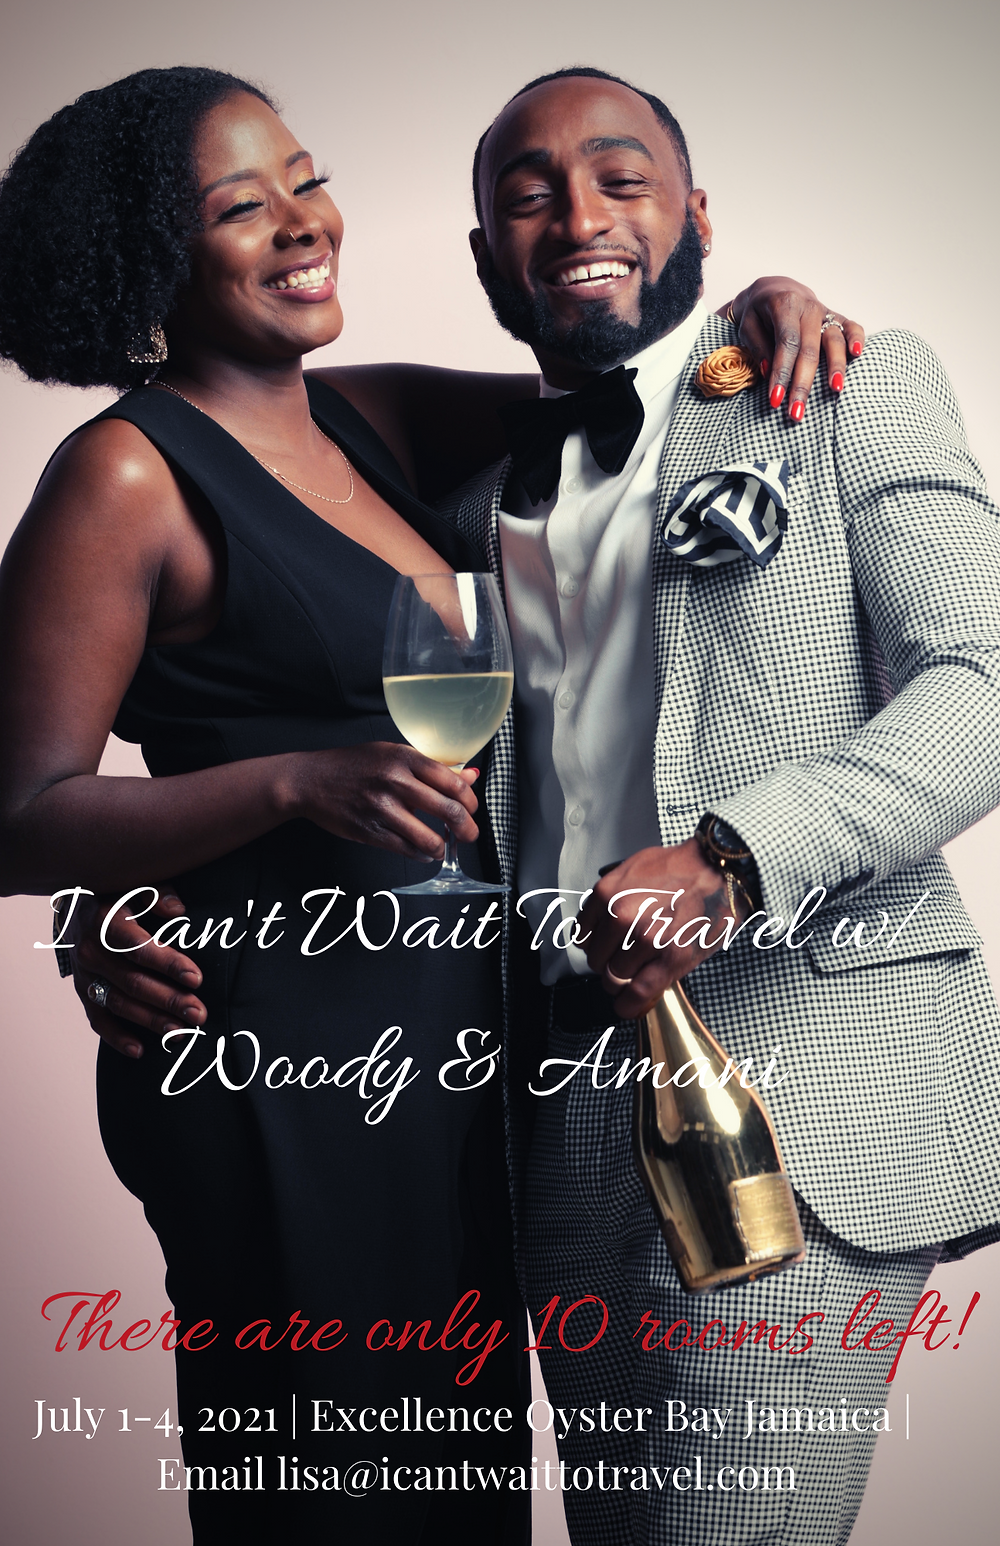 We're celebrating the Fourth of July weekend with one of Married At First Sight's favorite couples:  Woody & Amani Randall   We're going to stay at the all-inclusive, adult-only,  Excellence Oyster Bay Resort on a private peninsula in Montego Bay, Jamaica from July 1-4, 2021.  There are only 10 rooms left!